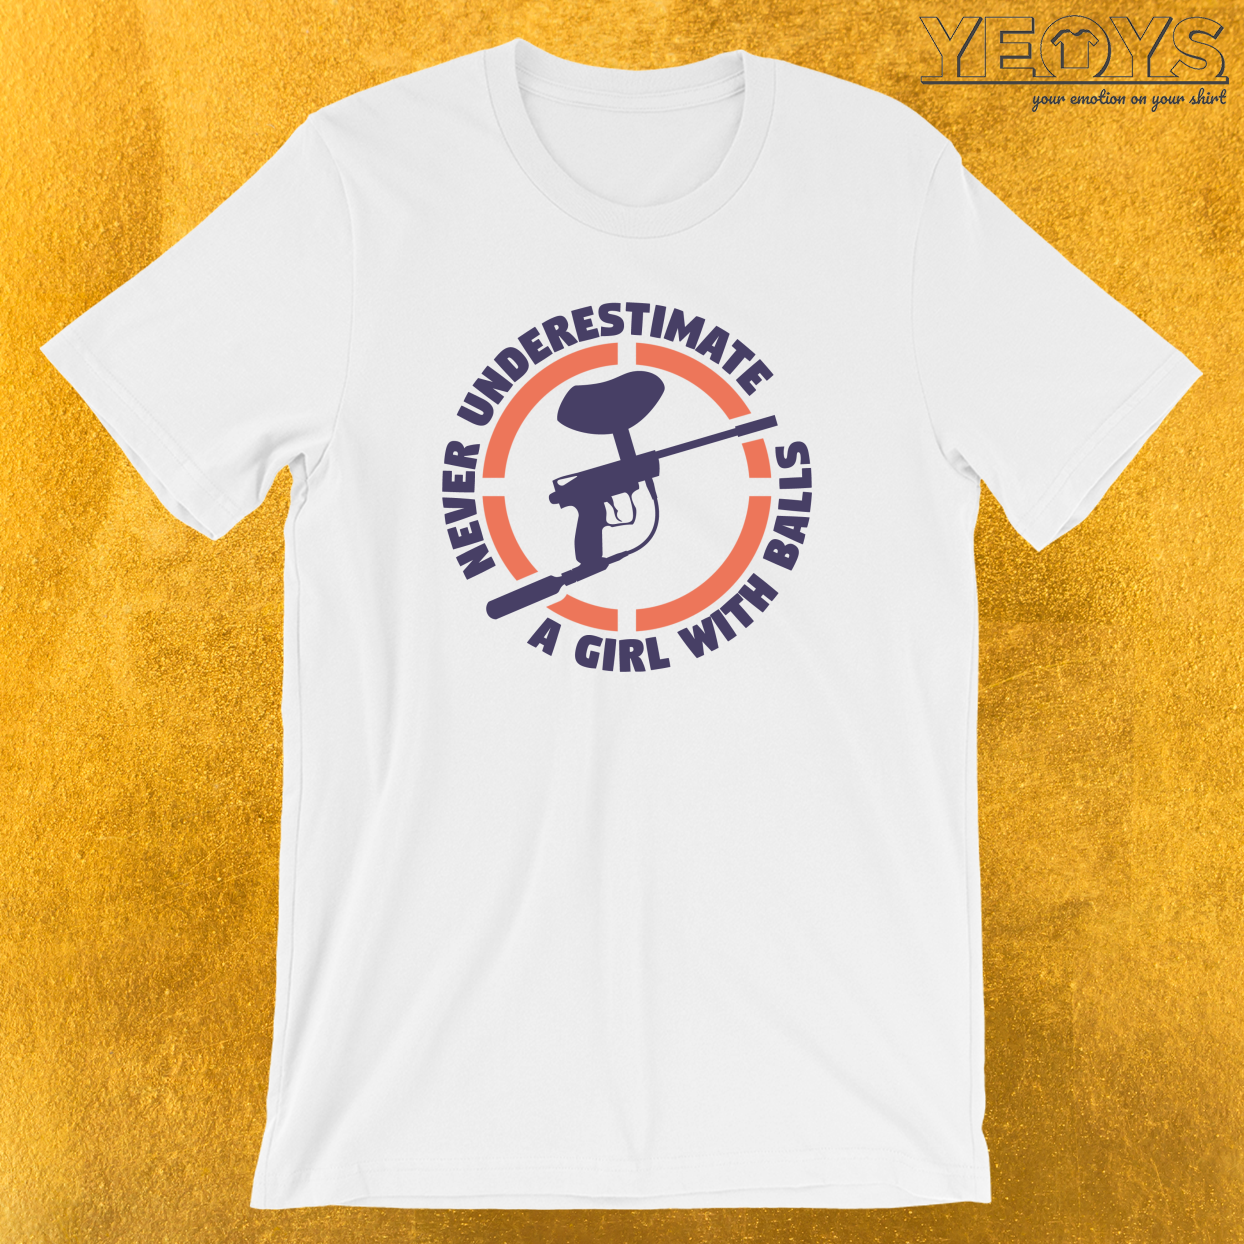 Never Underestimate A Girl With Balls T-Shirt